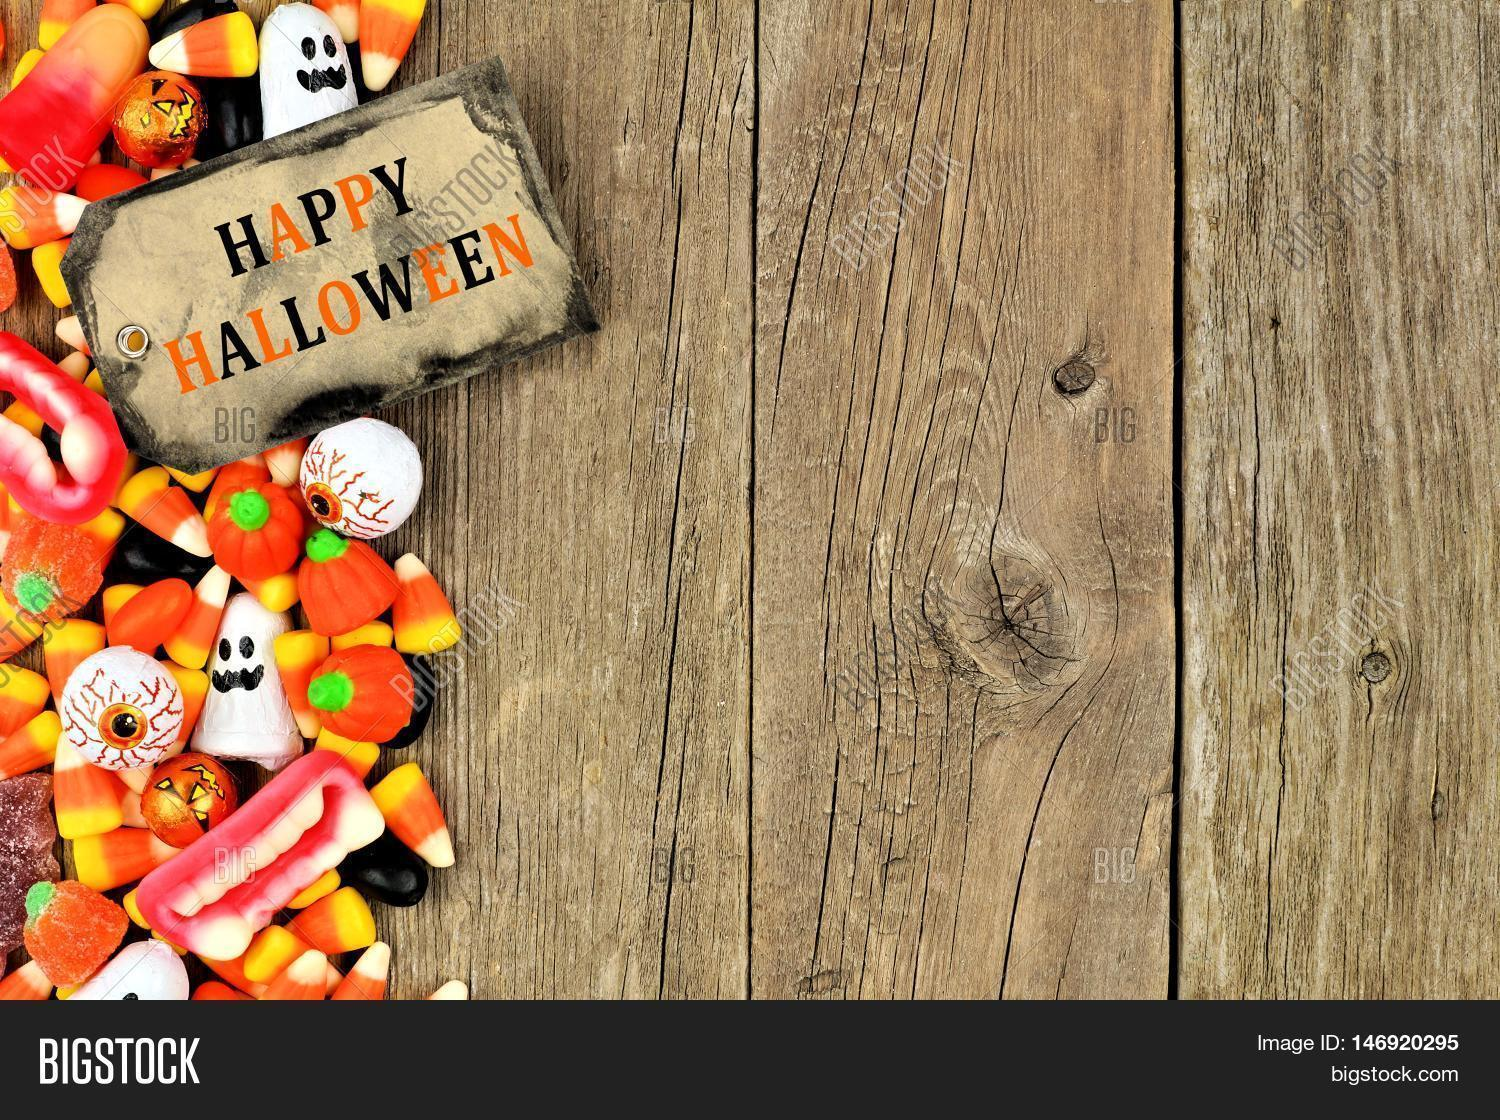 happy halloween tag candy side image amp photo bigstock